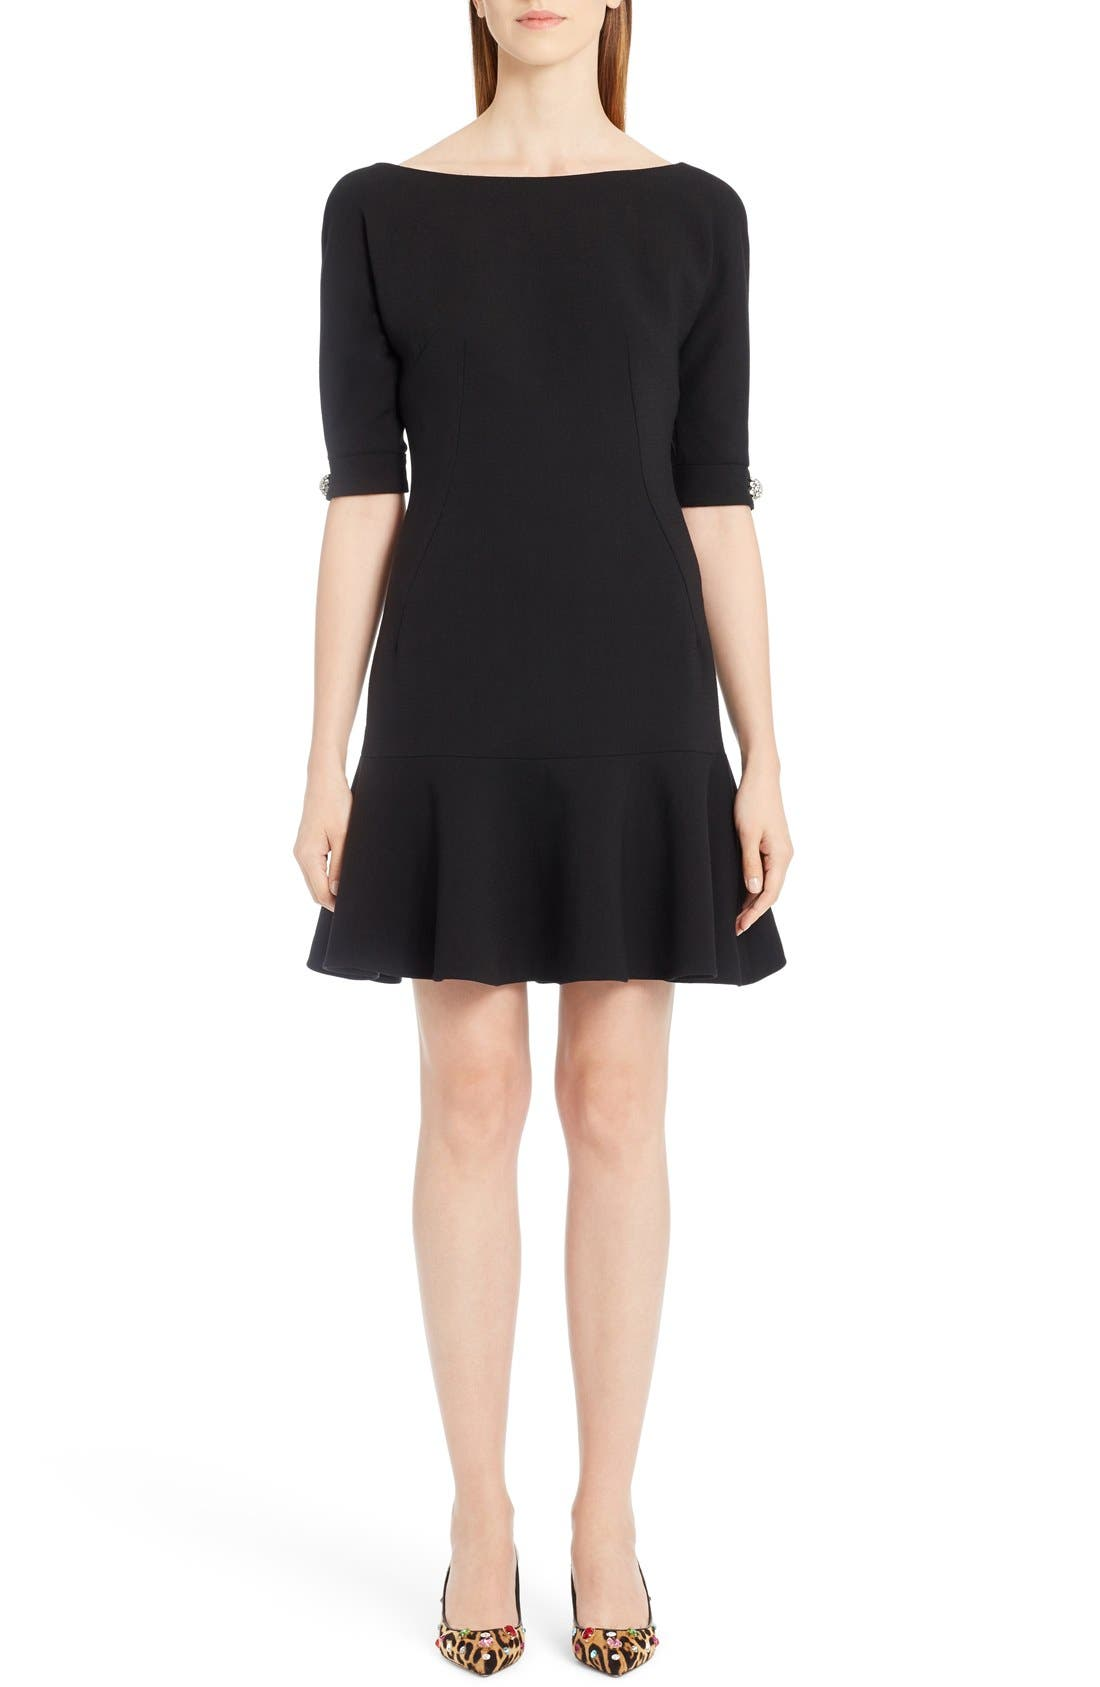 Alternate Image 1 Selected - Dolce&Gabbana Stretch Wool Fit & Flare Dress